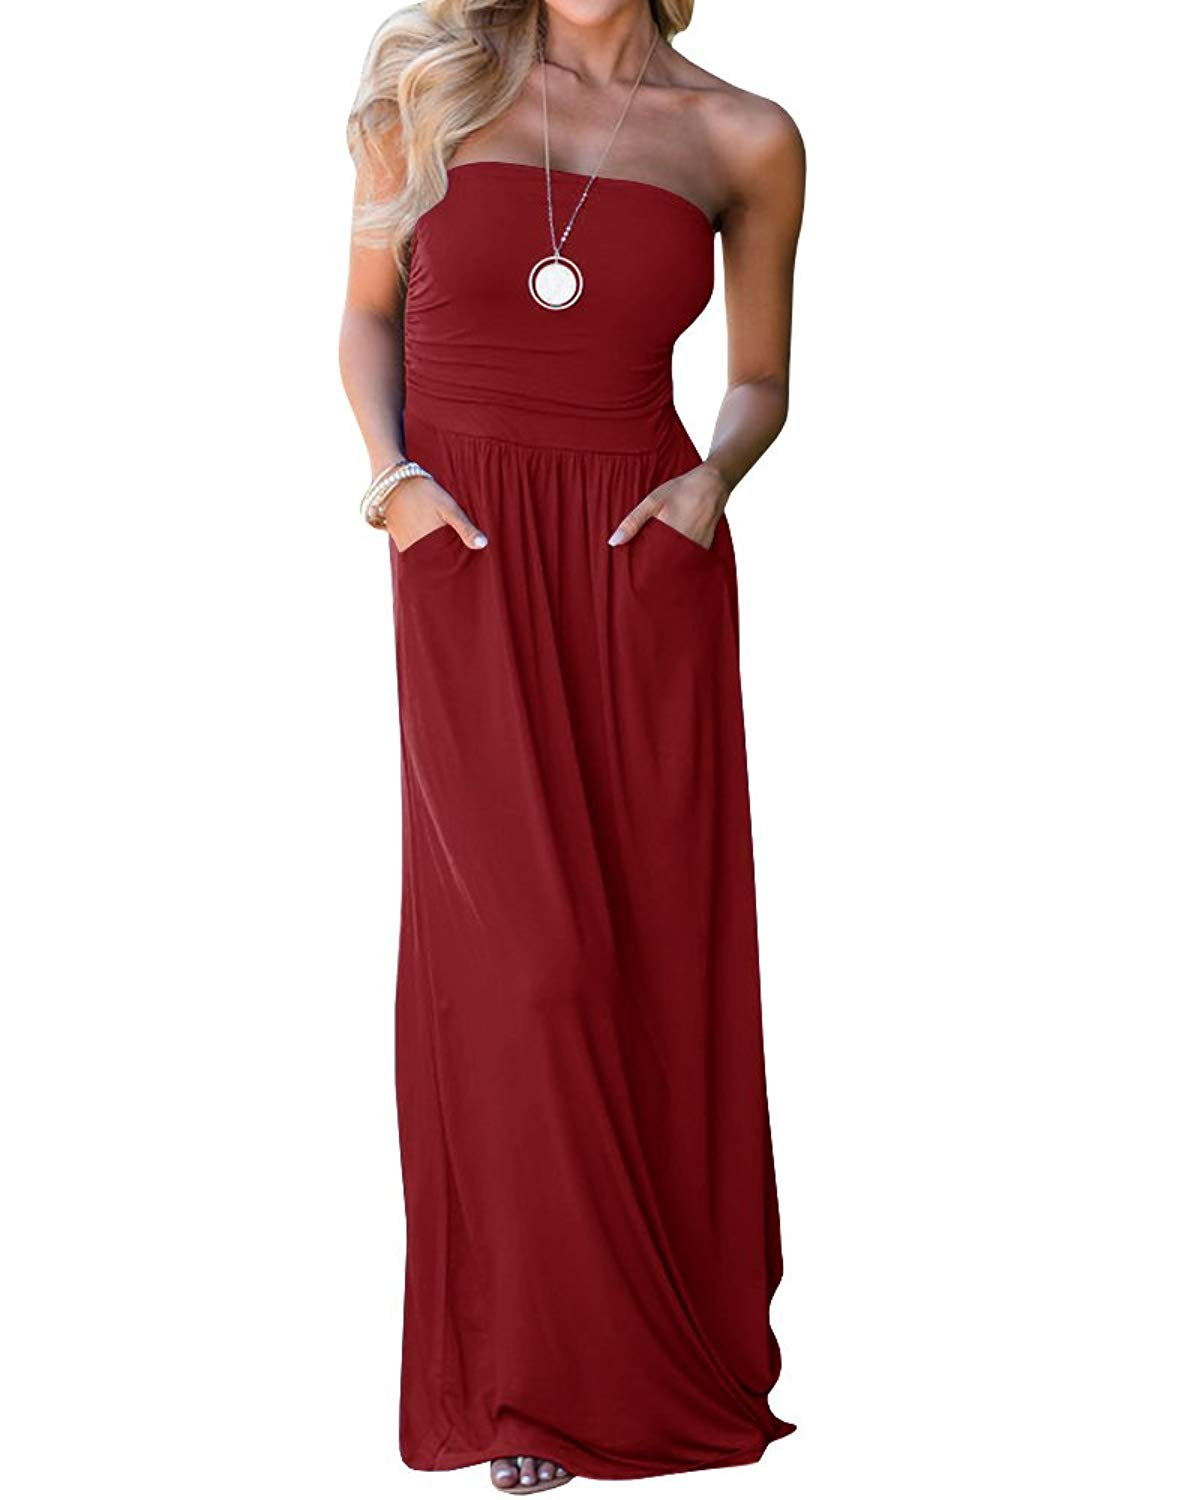 5ee7e751cab Get Quotations · Yobecho Solid Colors Sundress Cover up Tube Top Sleeveless  Casual Dress Long Maxi Dress with Pockets